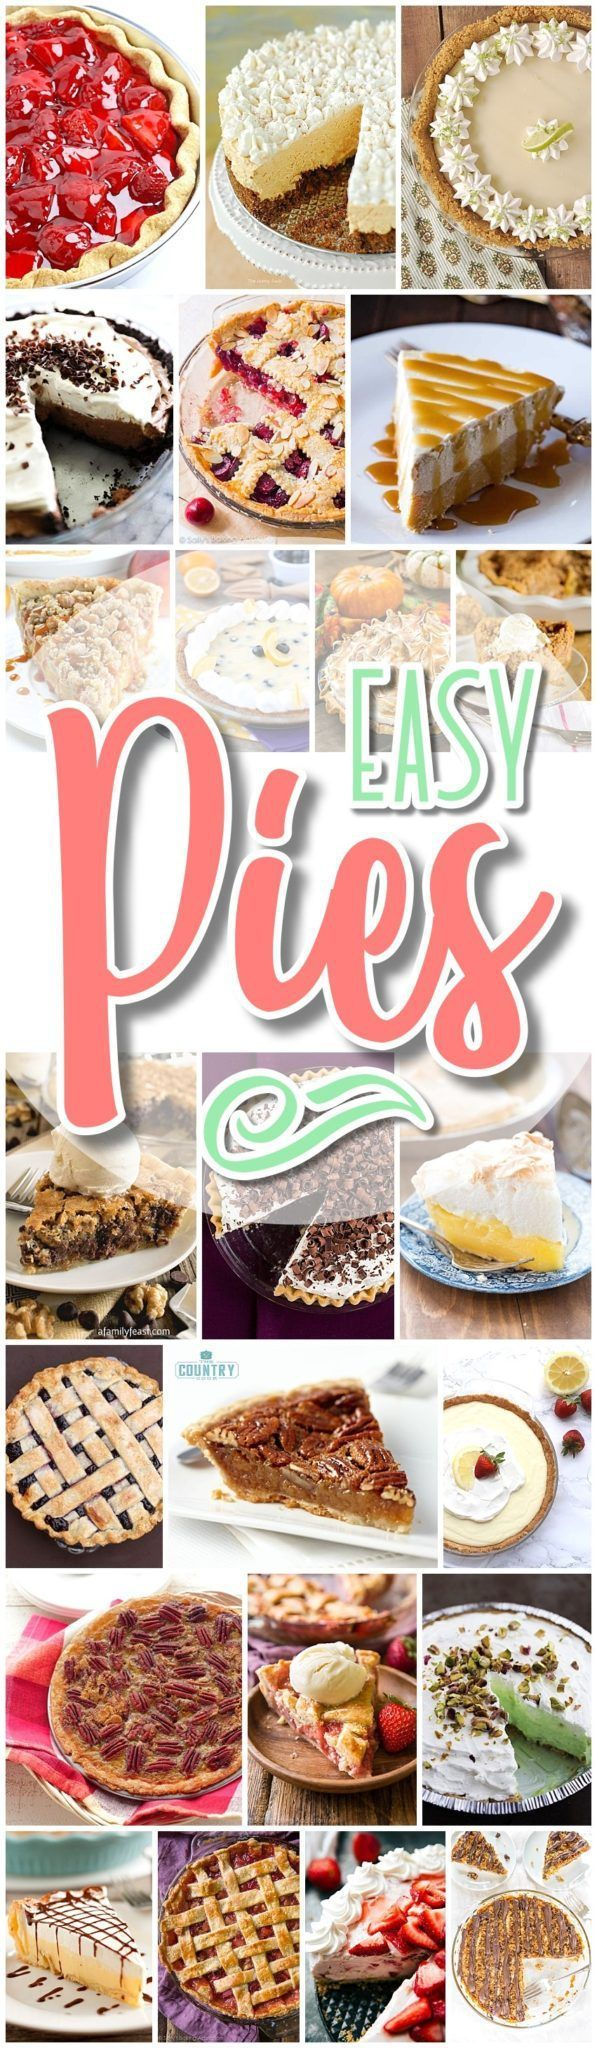 Favorite EASY Pies Recipes - Brunch Dessert No-Bake + Bake Musts Party Treats - Dreaming in DIY - Perfect for for Easter and Mother's Day Spring and Summer brunch dessert tables, 4th of July barbecues, summer potlucks, neighborhood block parties and birthdays.